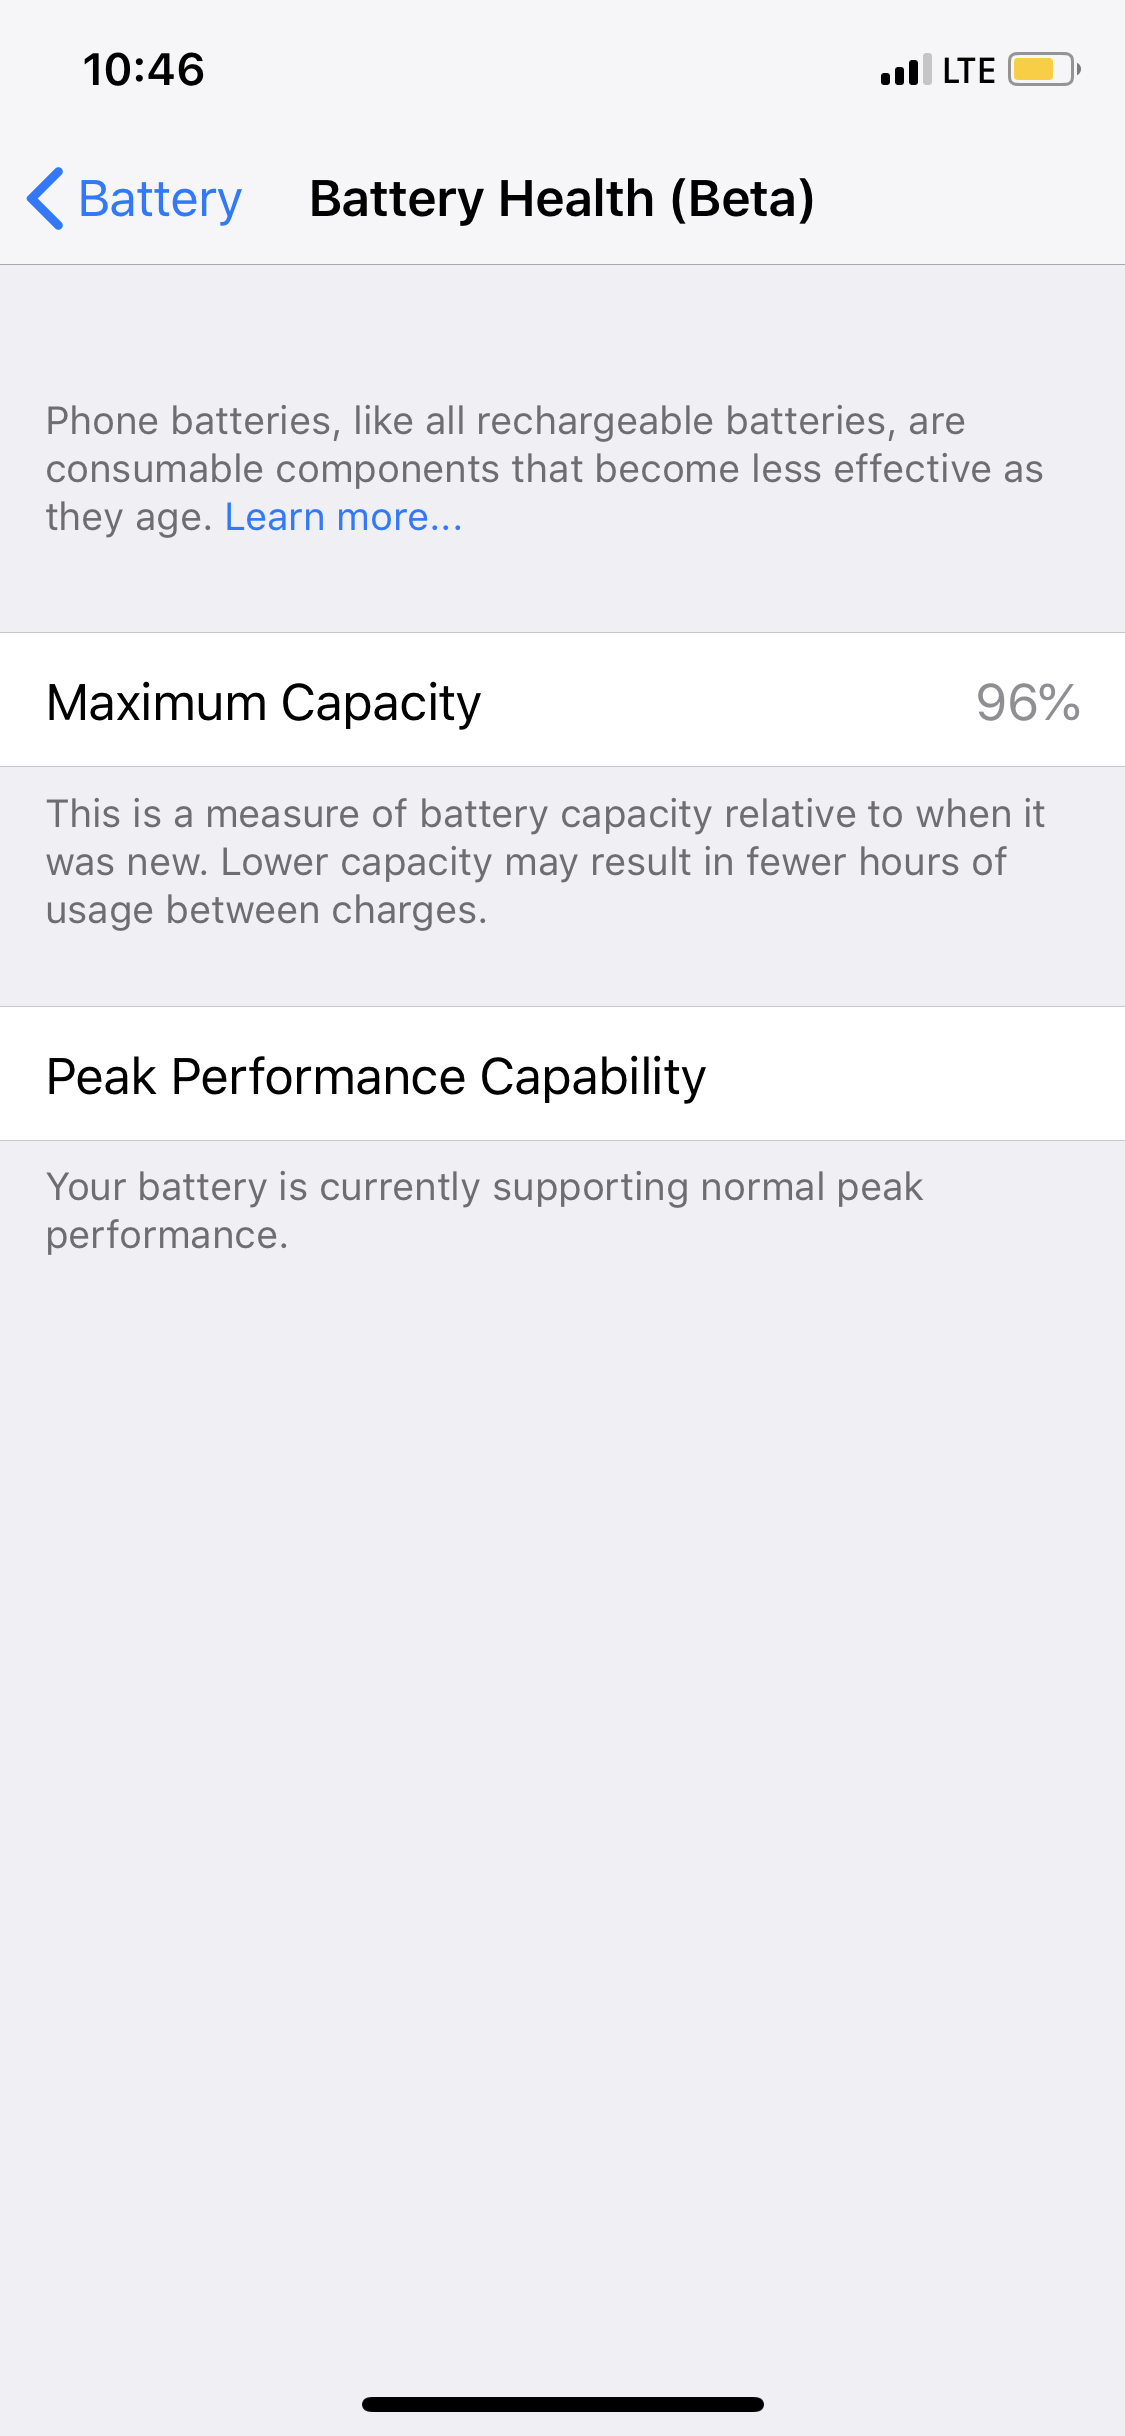 What is the battery capacity